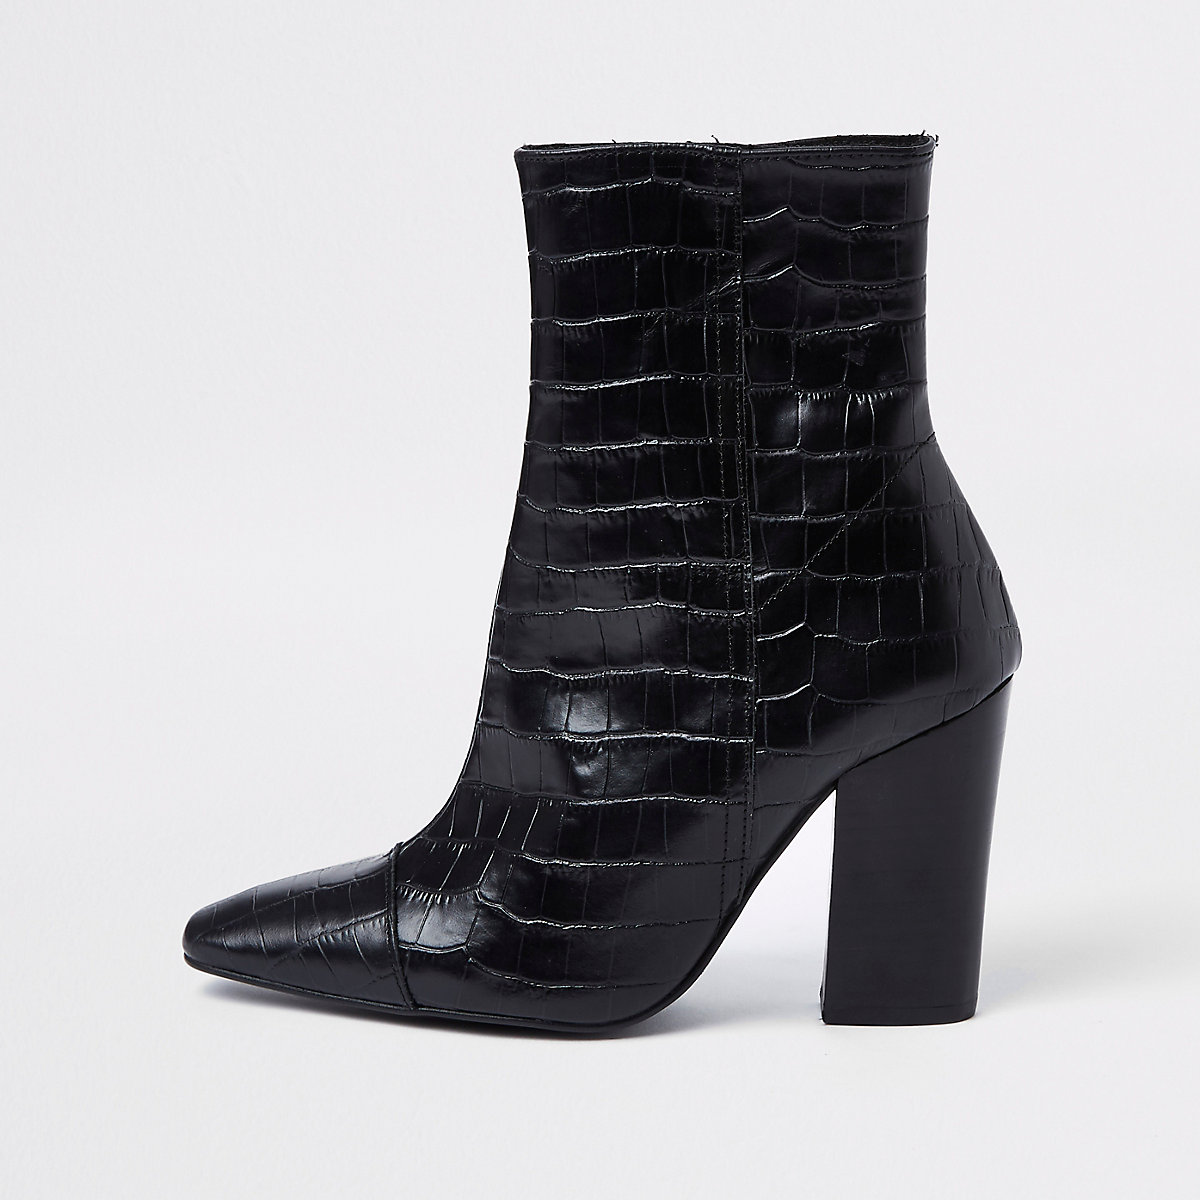 Black croc embossed block heel boots